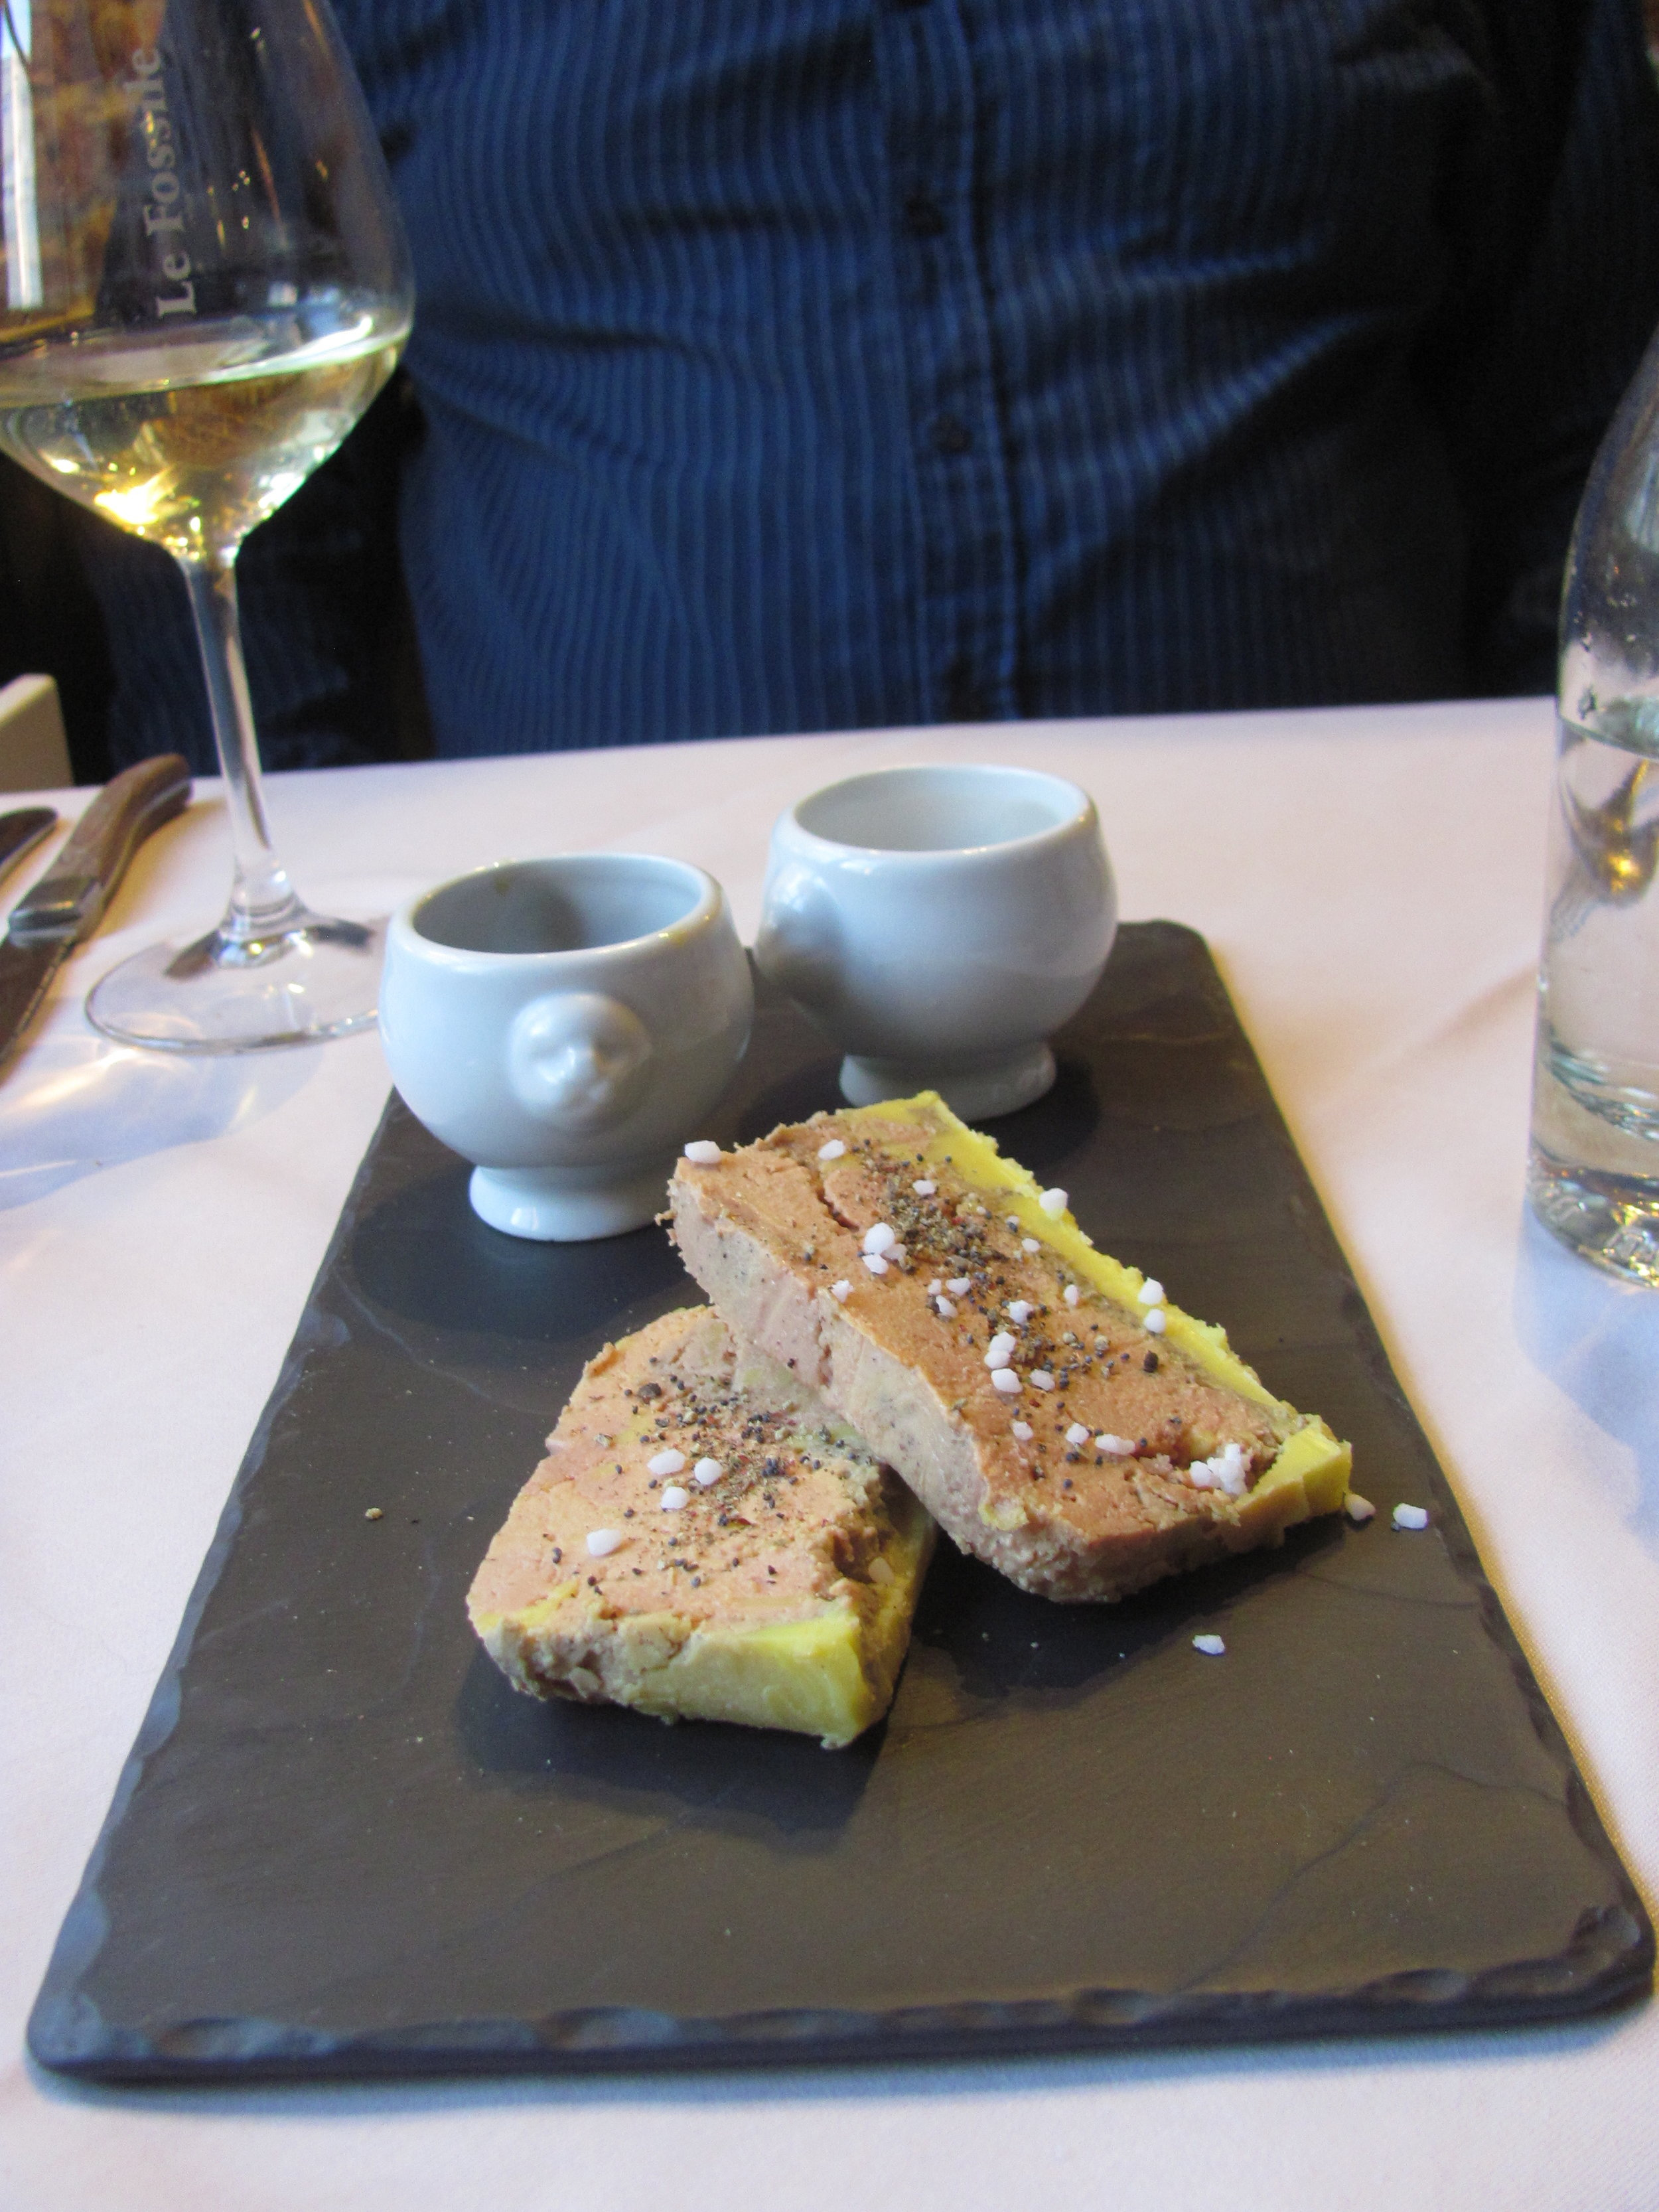 Slices of Foie Gras or  Foie Gras de Canard et ses Oignons Confits du Chef . Simple. Delicious.